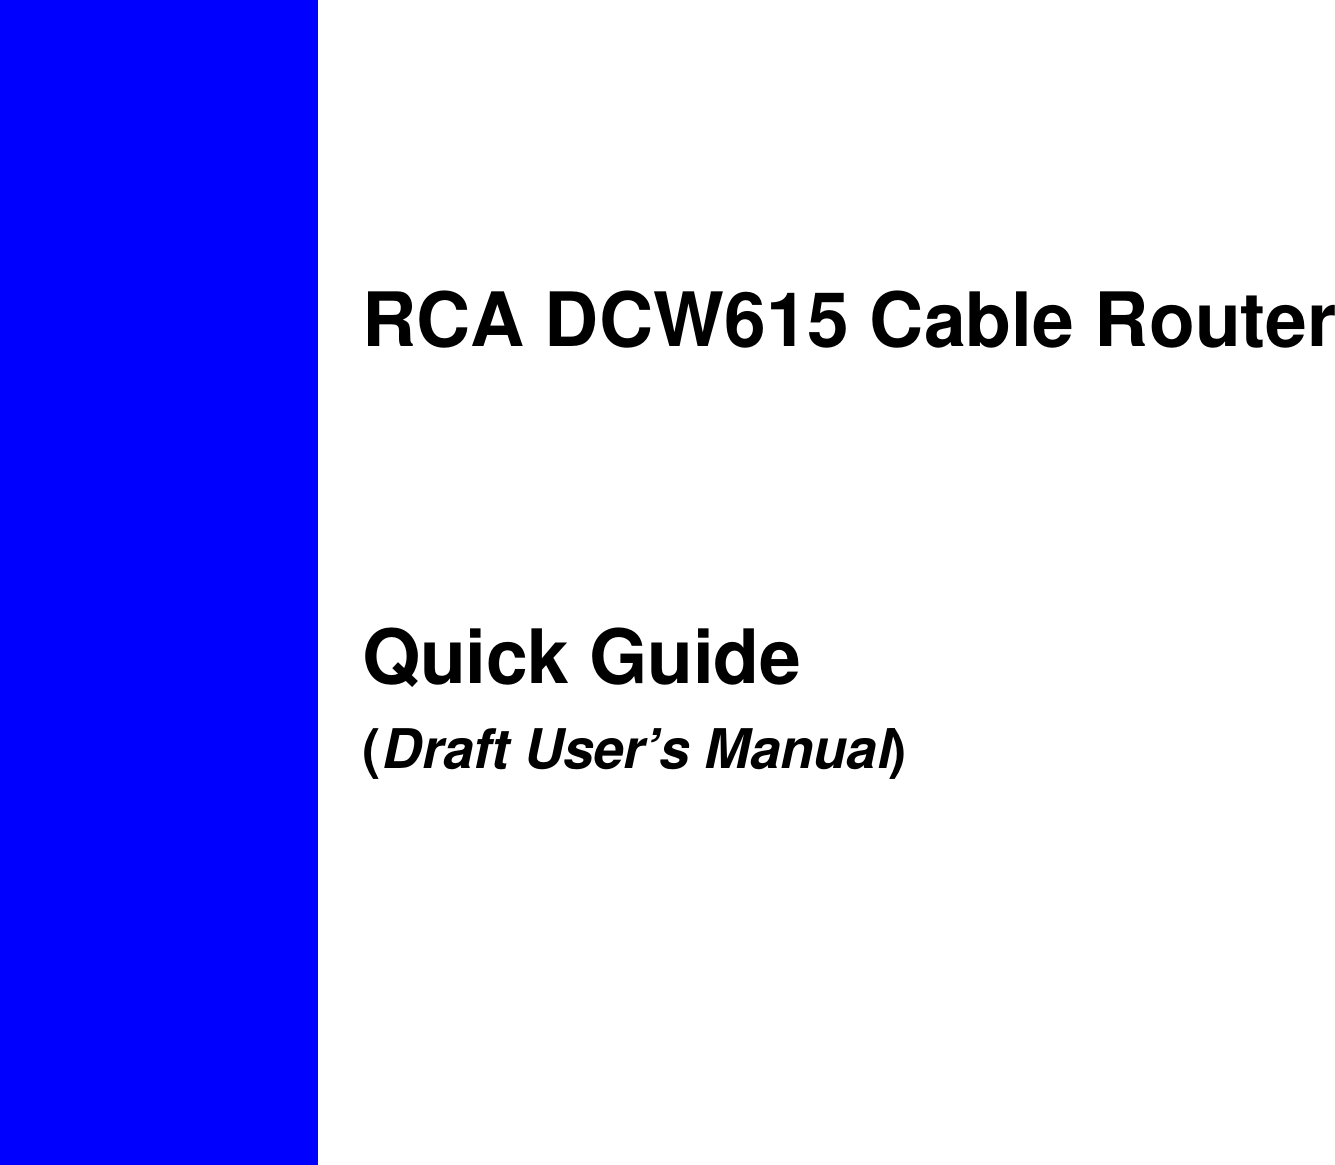 RCA DCW615 Cable Router   Quick Guide (Draft User's Manual)